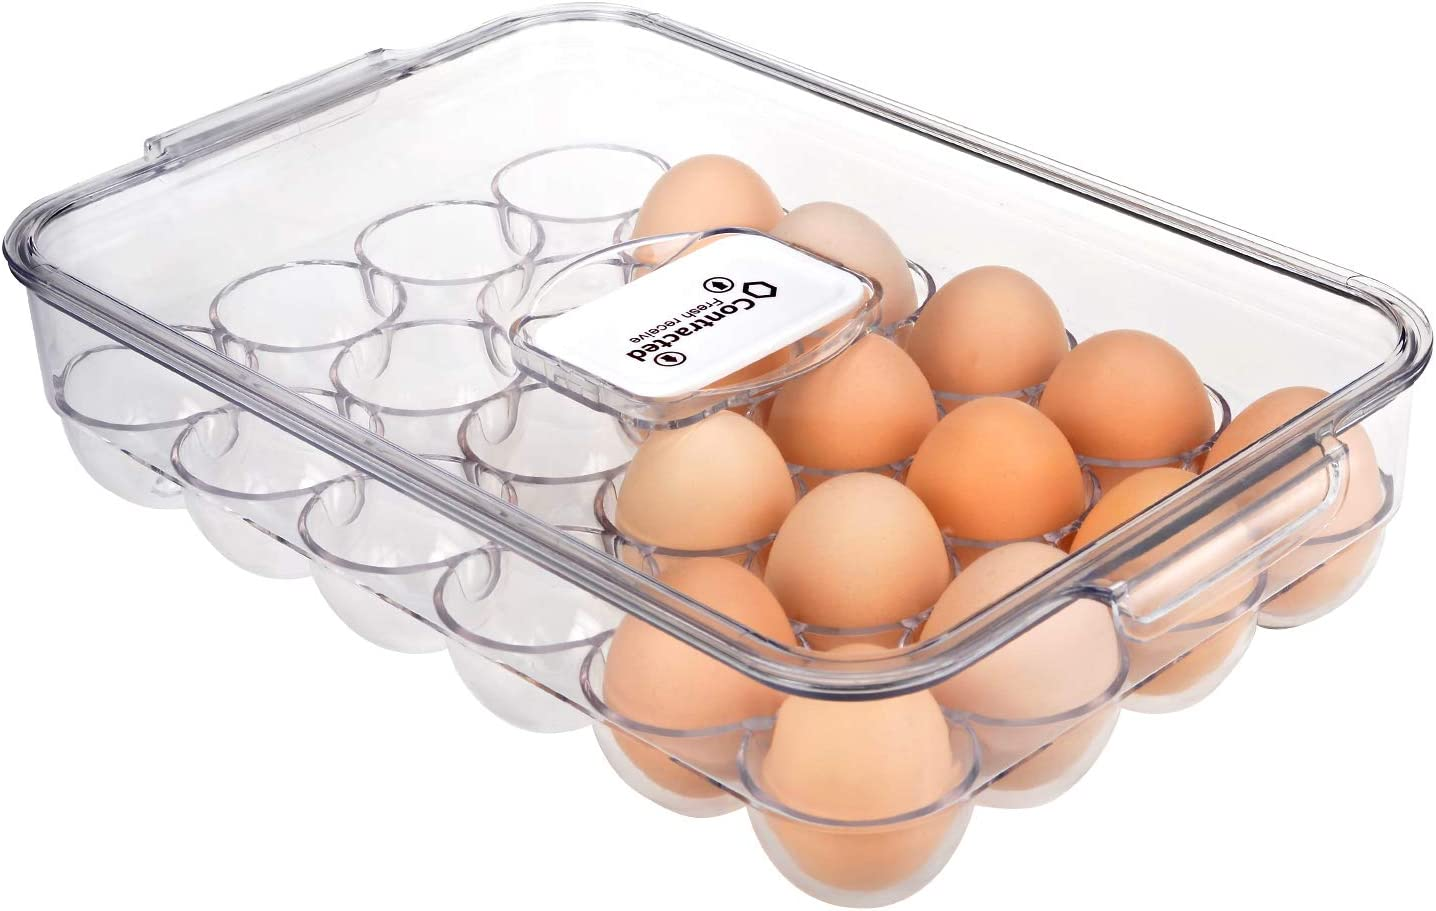 Ambergron 24 Eggs Holder for Refrigerator, Plastic Egg Containers Organizer for Fridge Kitchen Countertop, BPA-Free, Clear